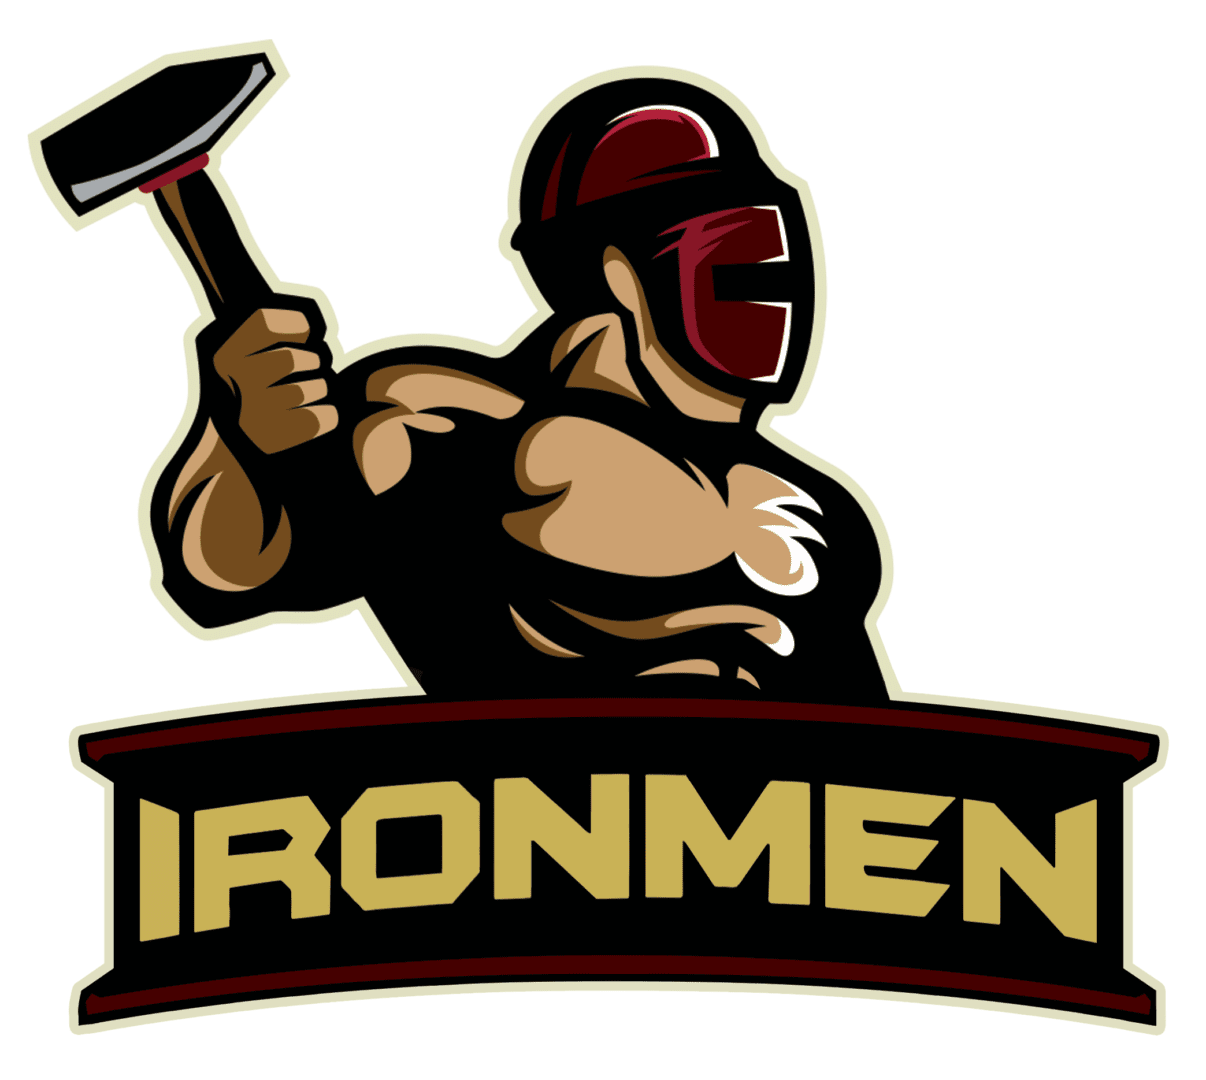 Ironmen opponent cancels, so team will play a traditional outdoor team on Saturday night